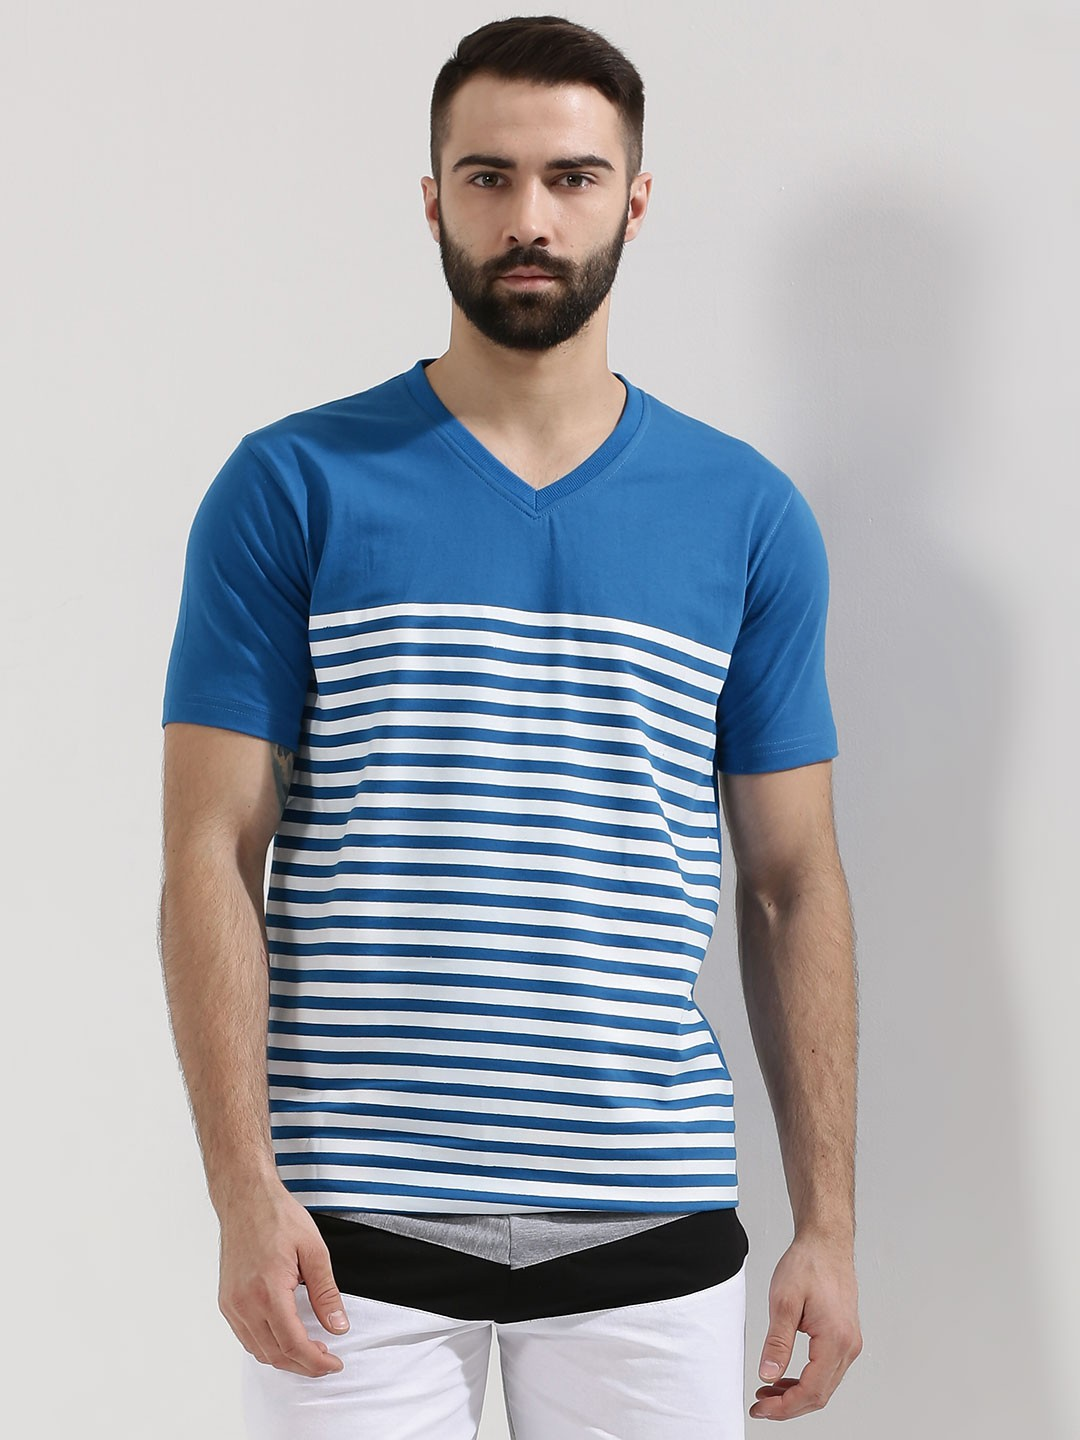 Mens Striped V Neck T Shirt